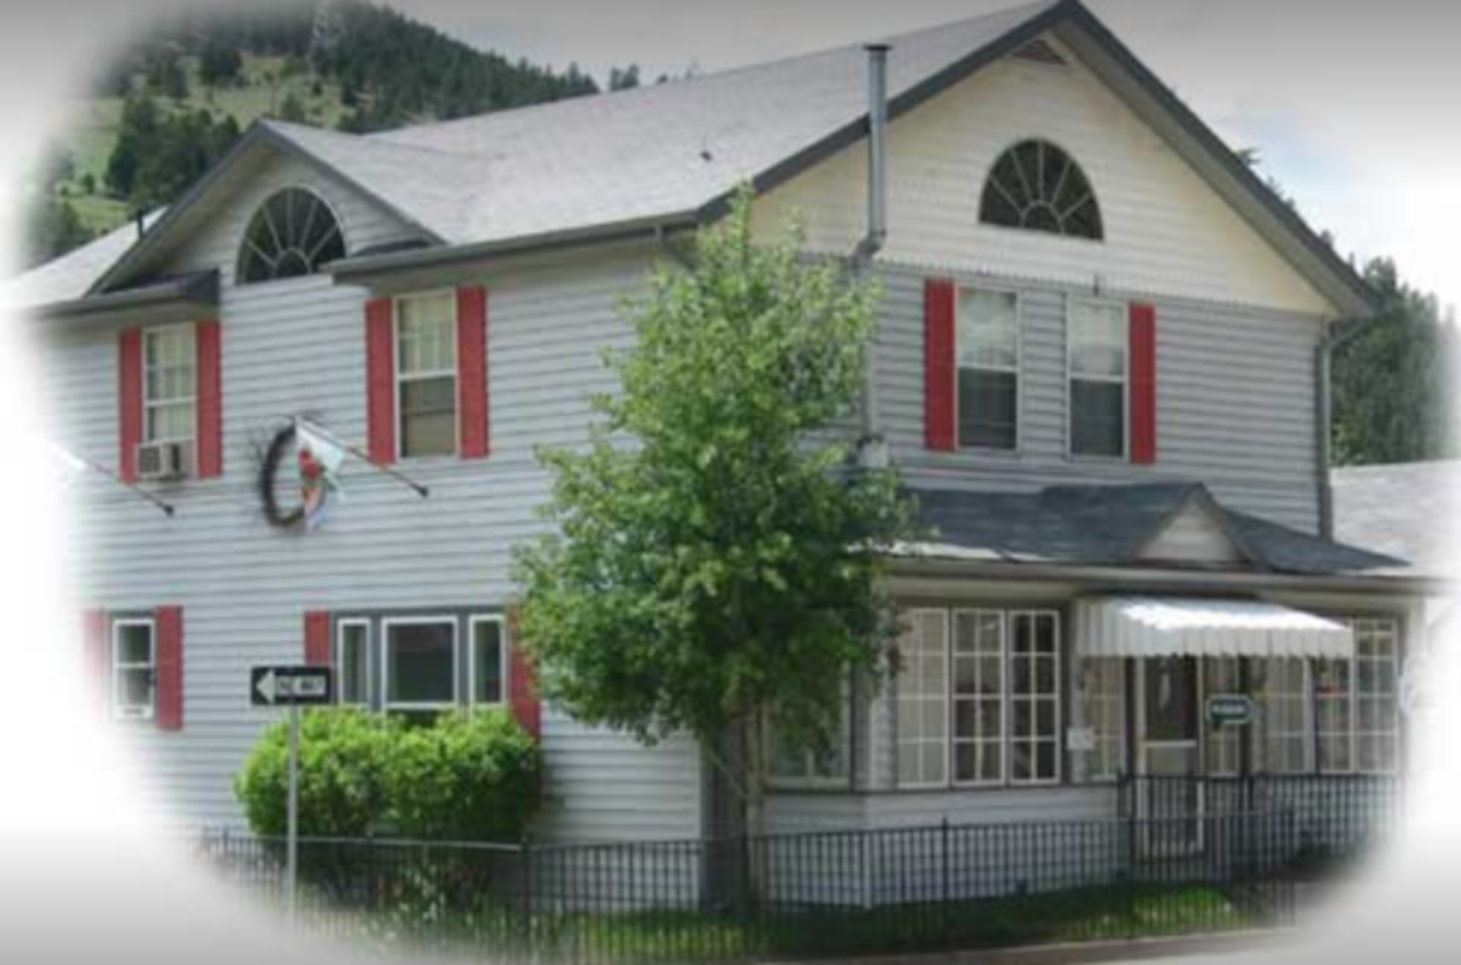 A small house in front of a building at Miners Pick Bed and Breakfast.